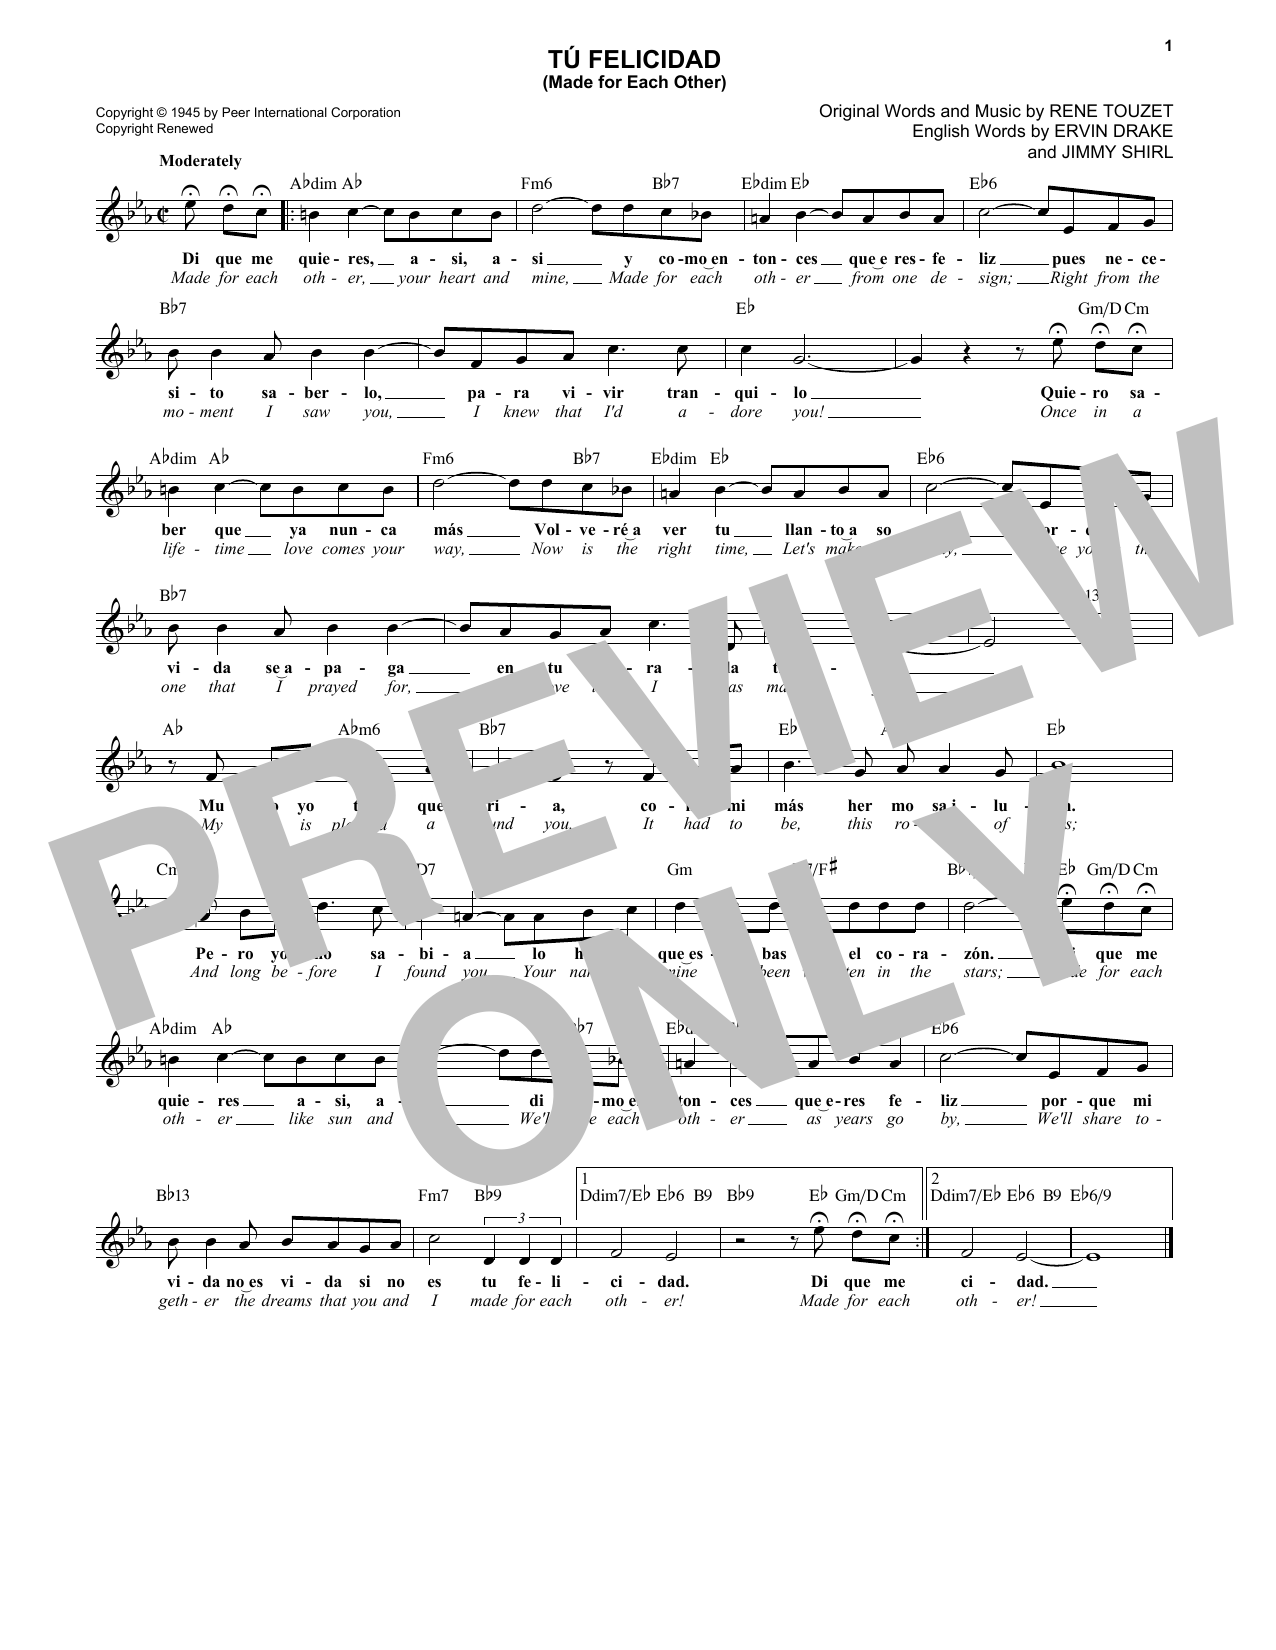 Ervin Drake Tu Felicidad (Made For Each Other) sheet music notes and chords